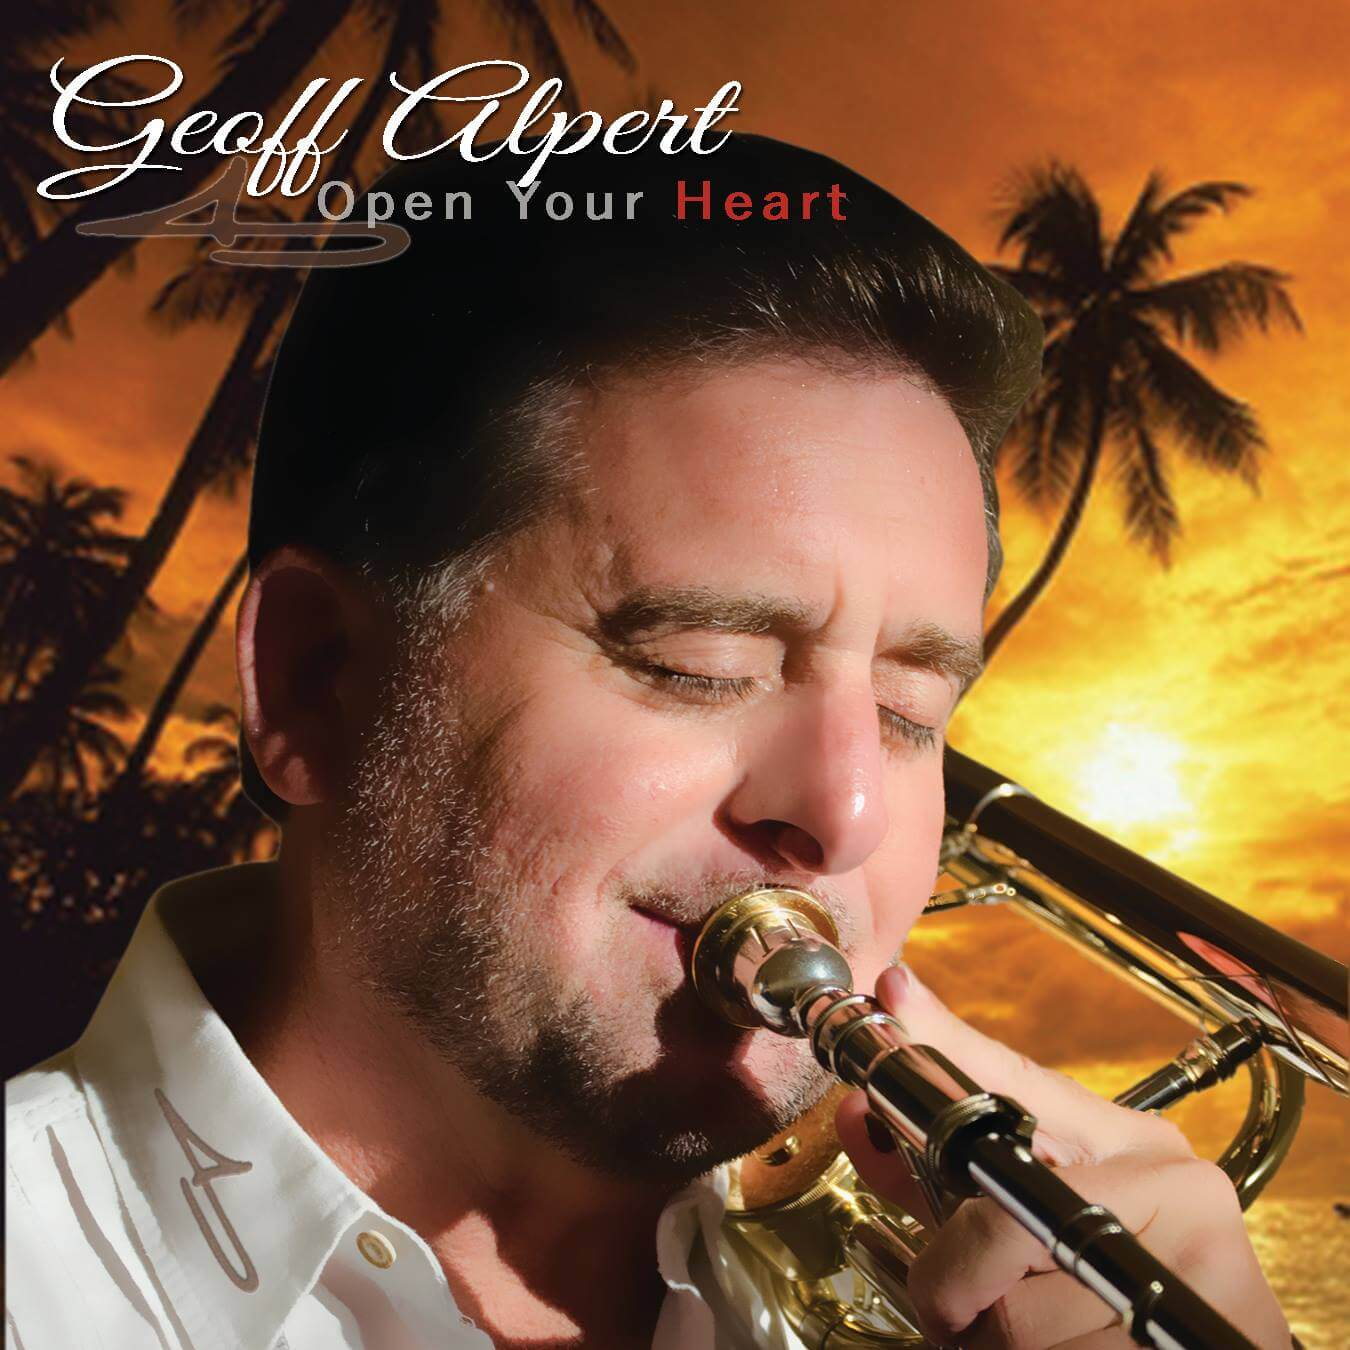 Geoff Alpert New Album Open Your Heart